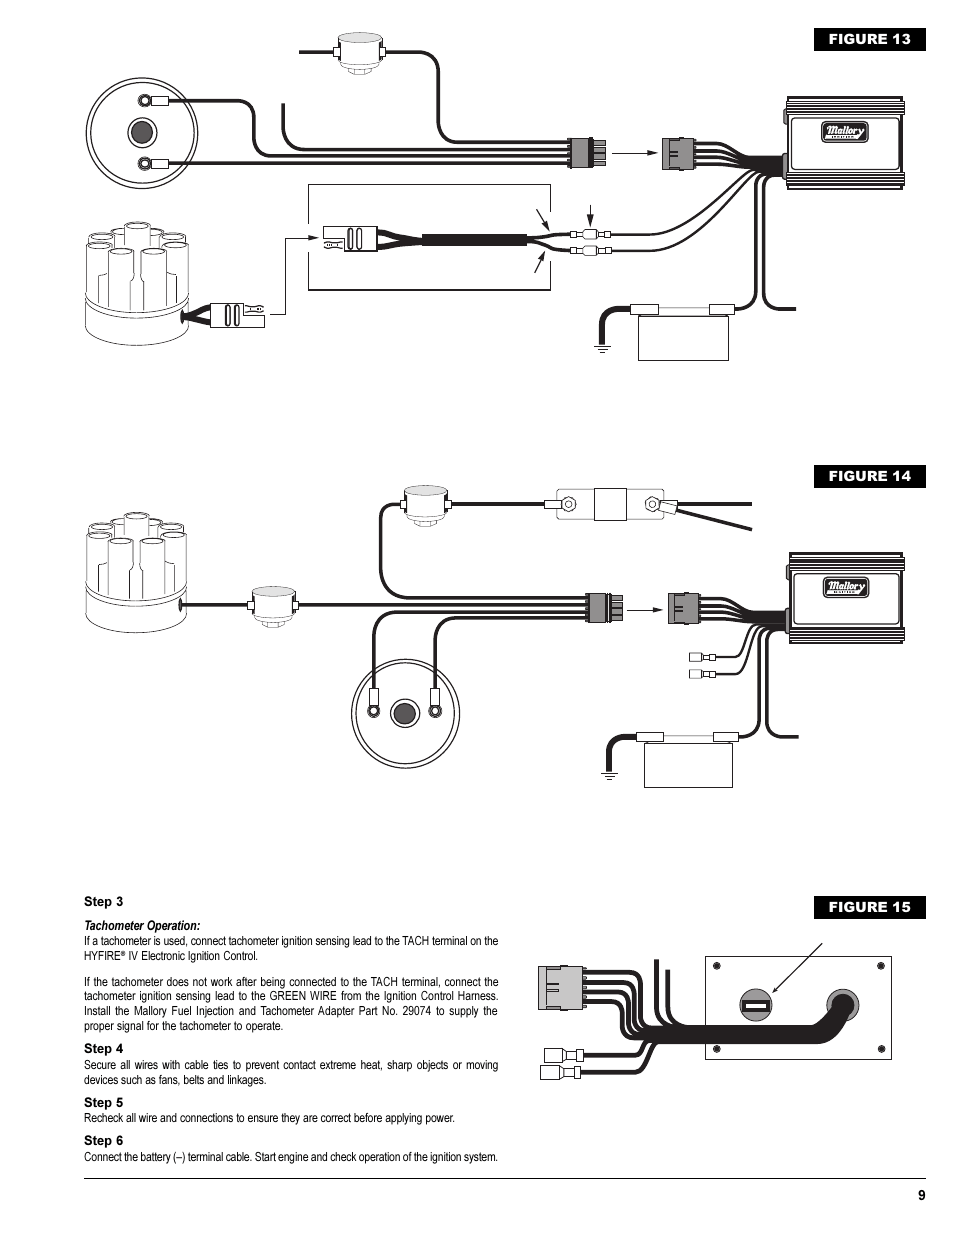 Wiring Diagram For 1974 Plymouth Duster | Wiring Liry on